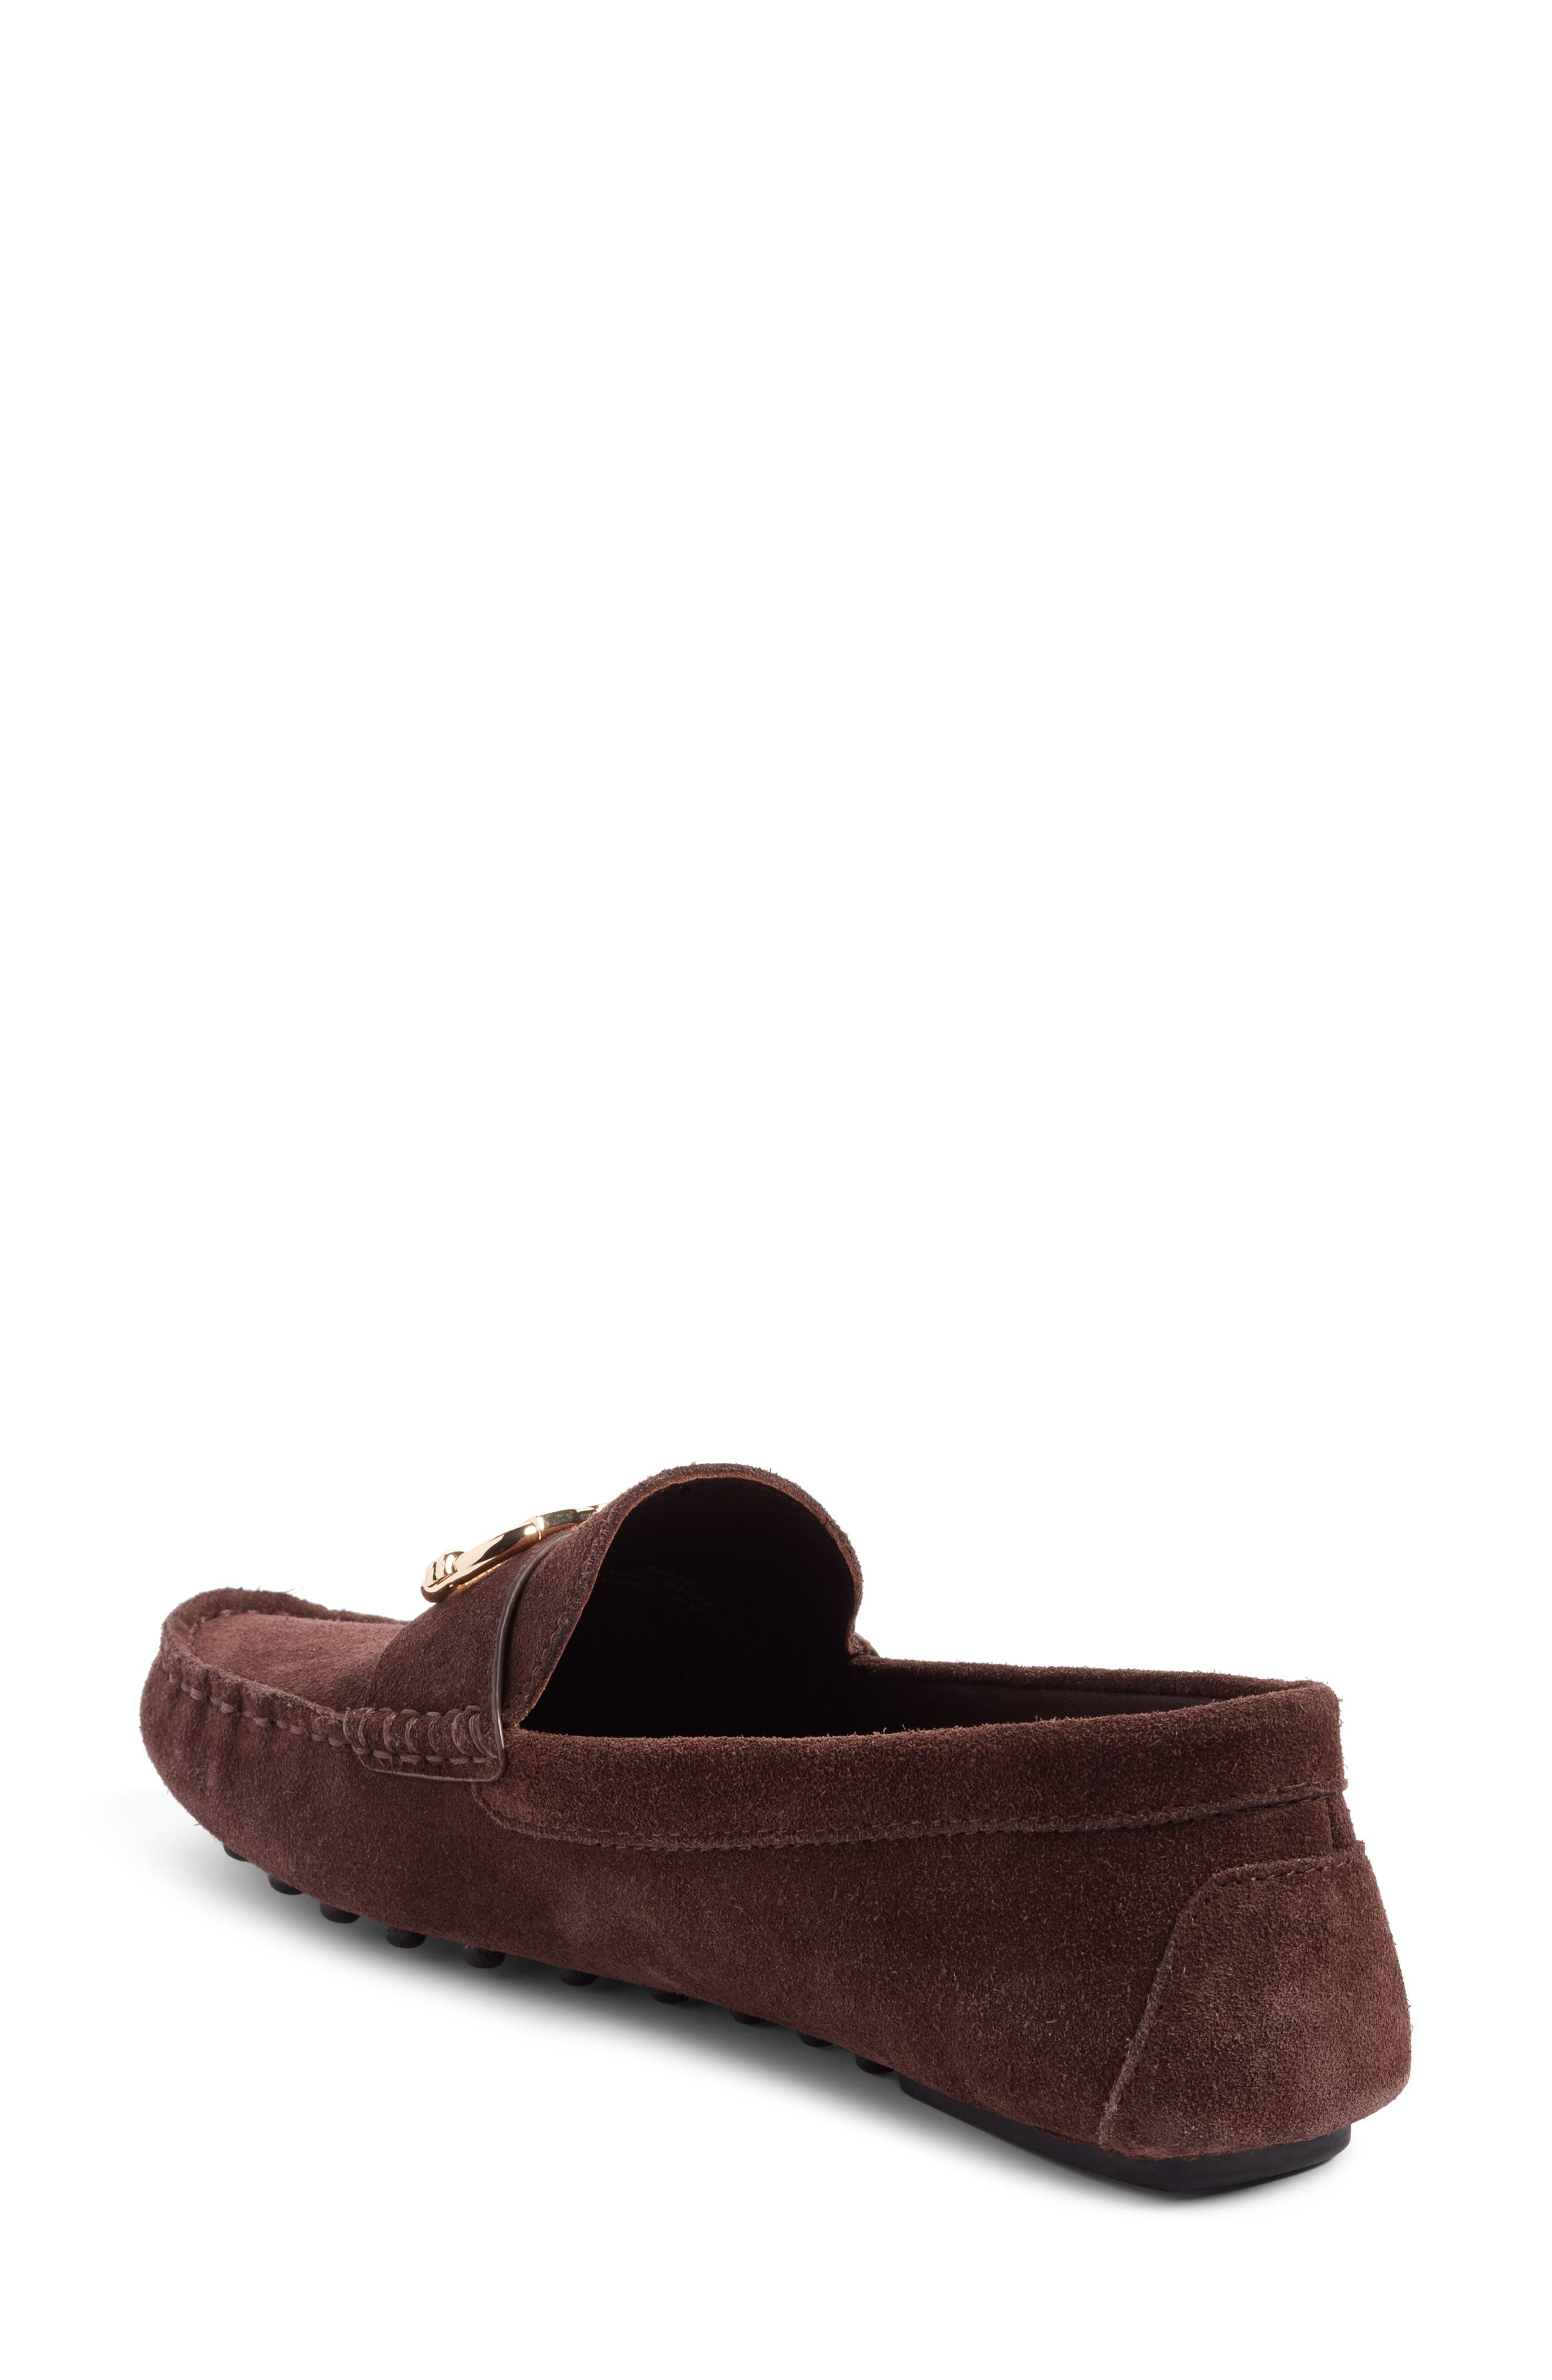 Gemini Driving Loafer,                             Alternate thumbnail 6, color,